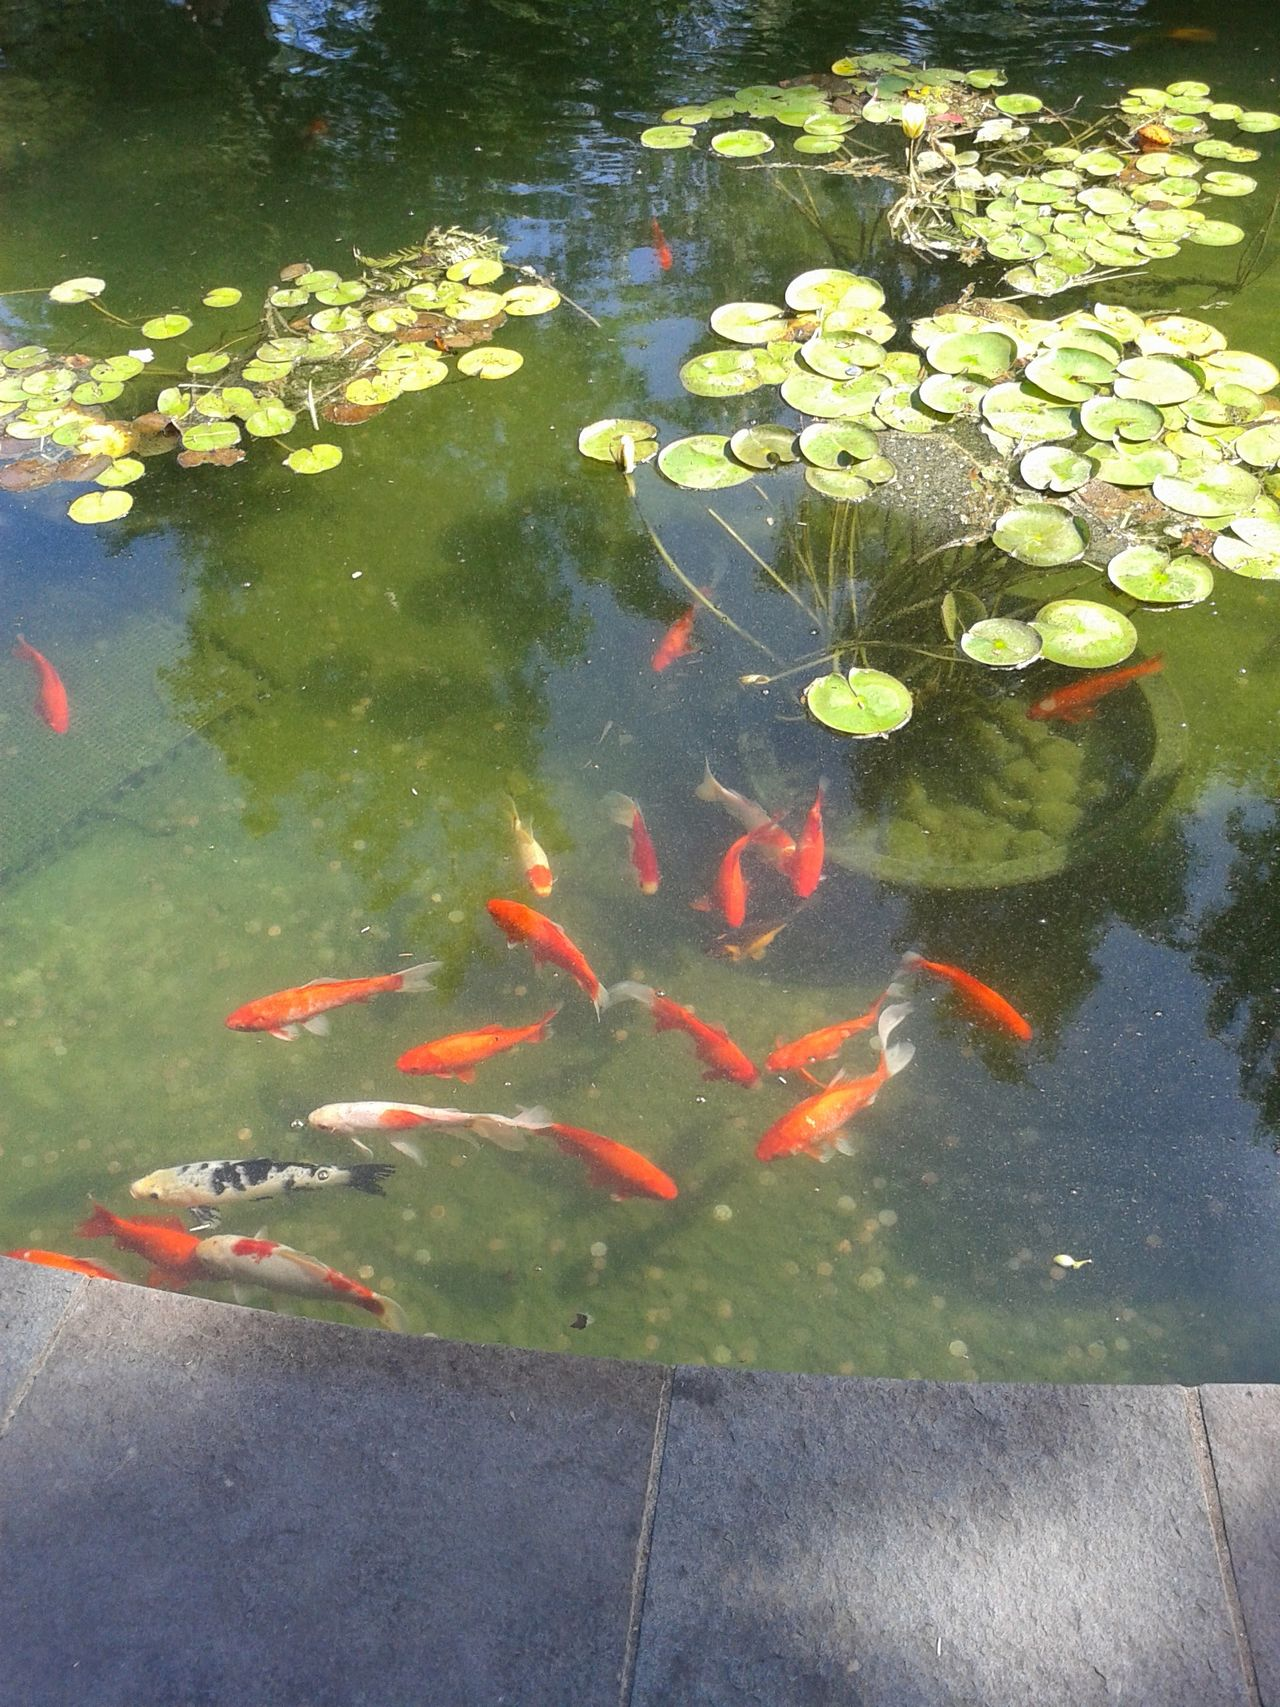 Fish Pond Life Animal Themes Nature Arboretum Sunlight Beauty In Nature Outdoors